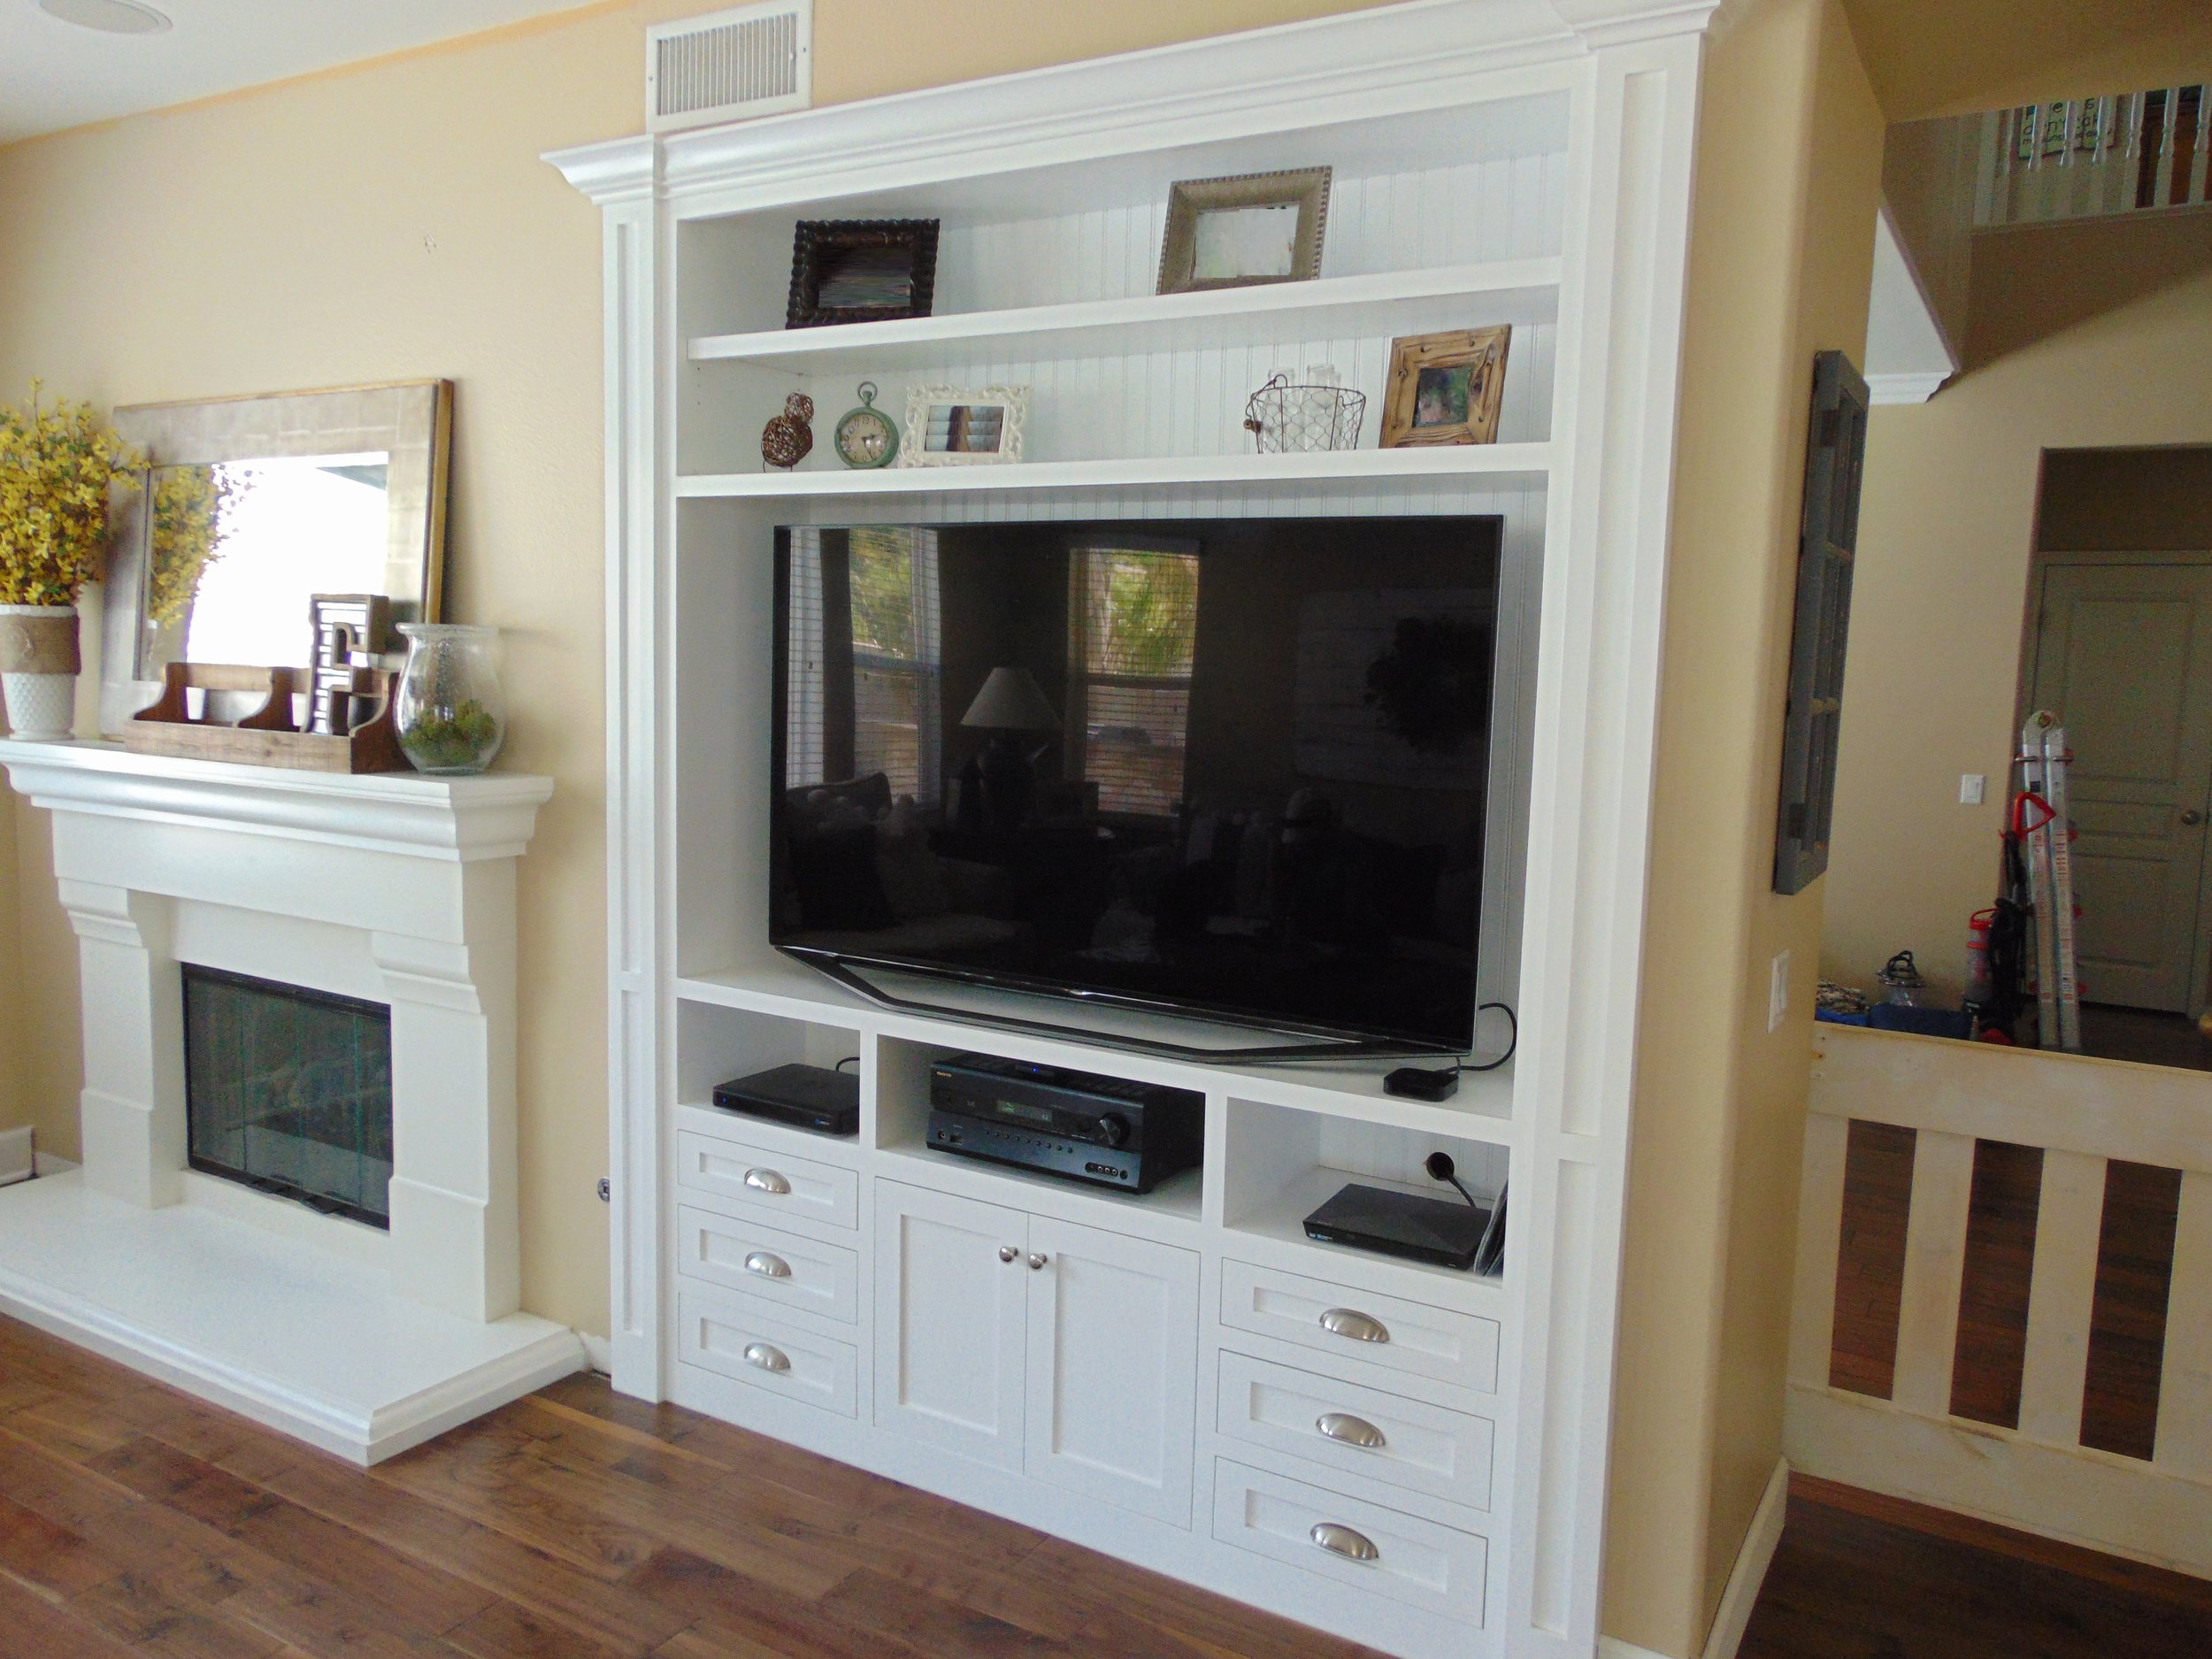 Highland Built-in